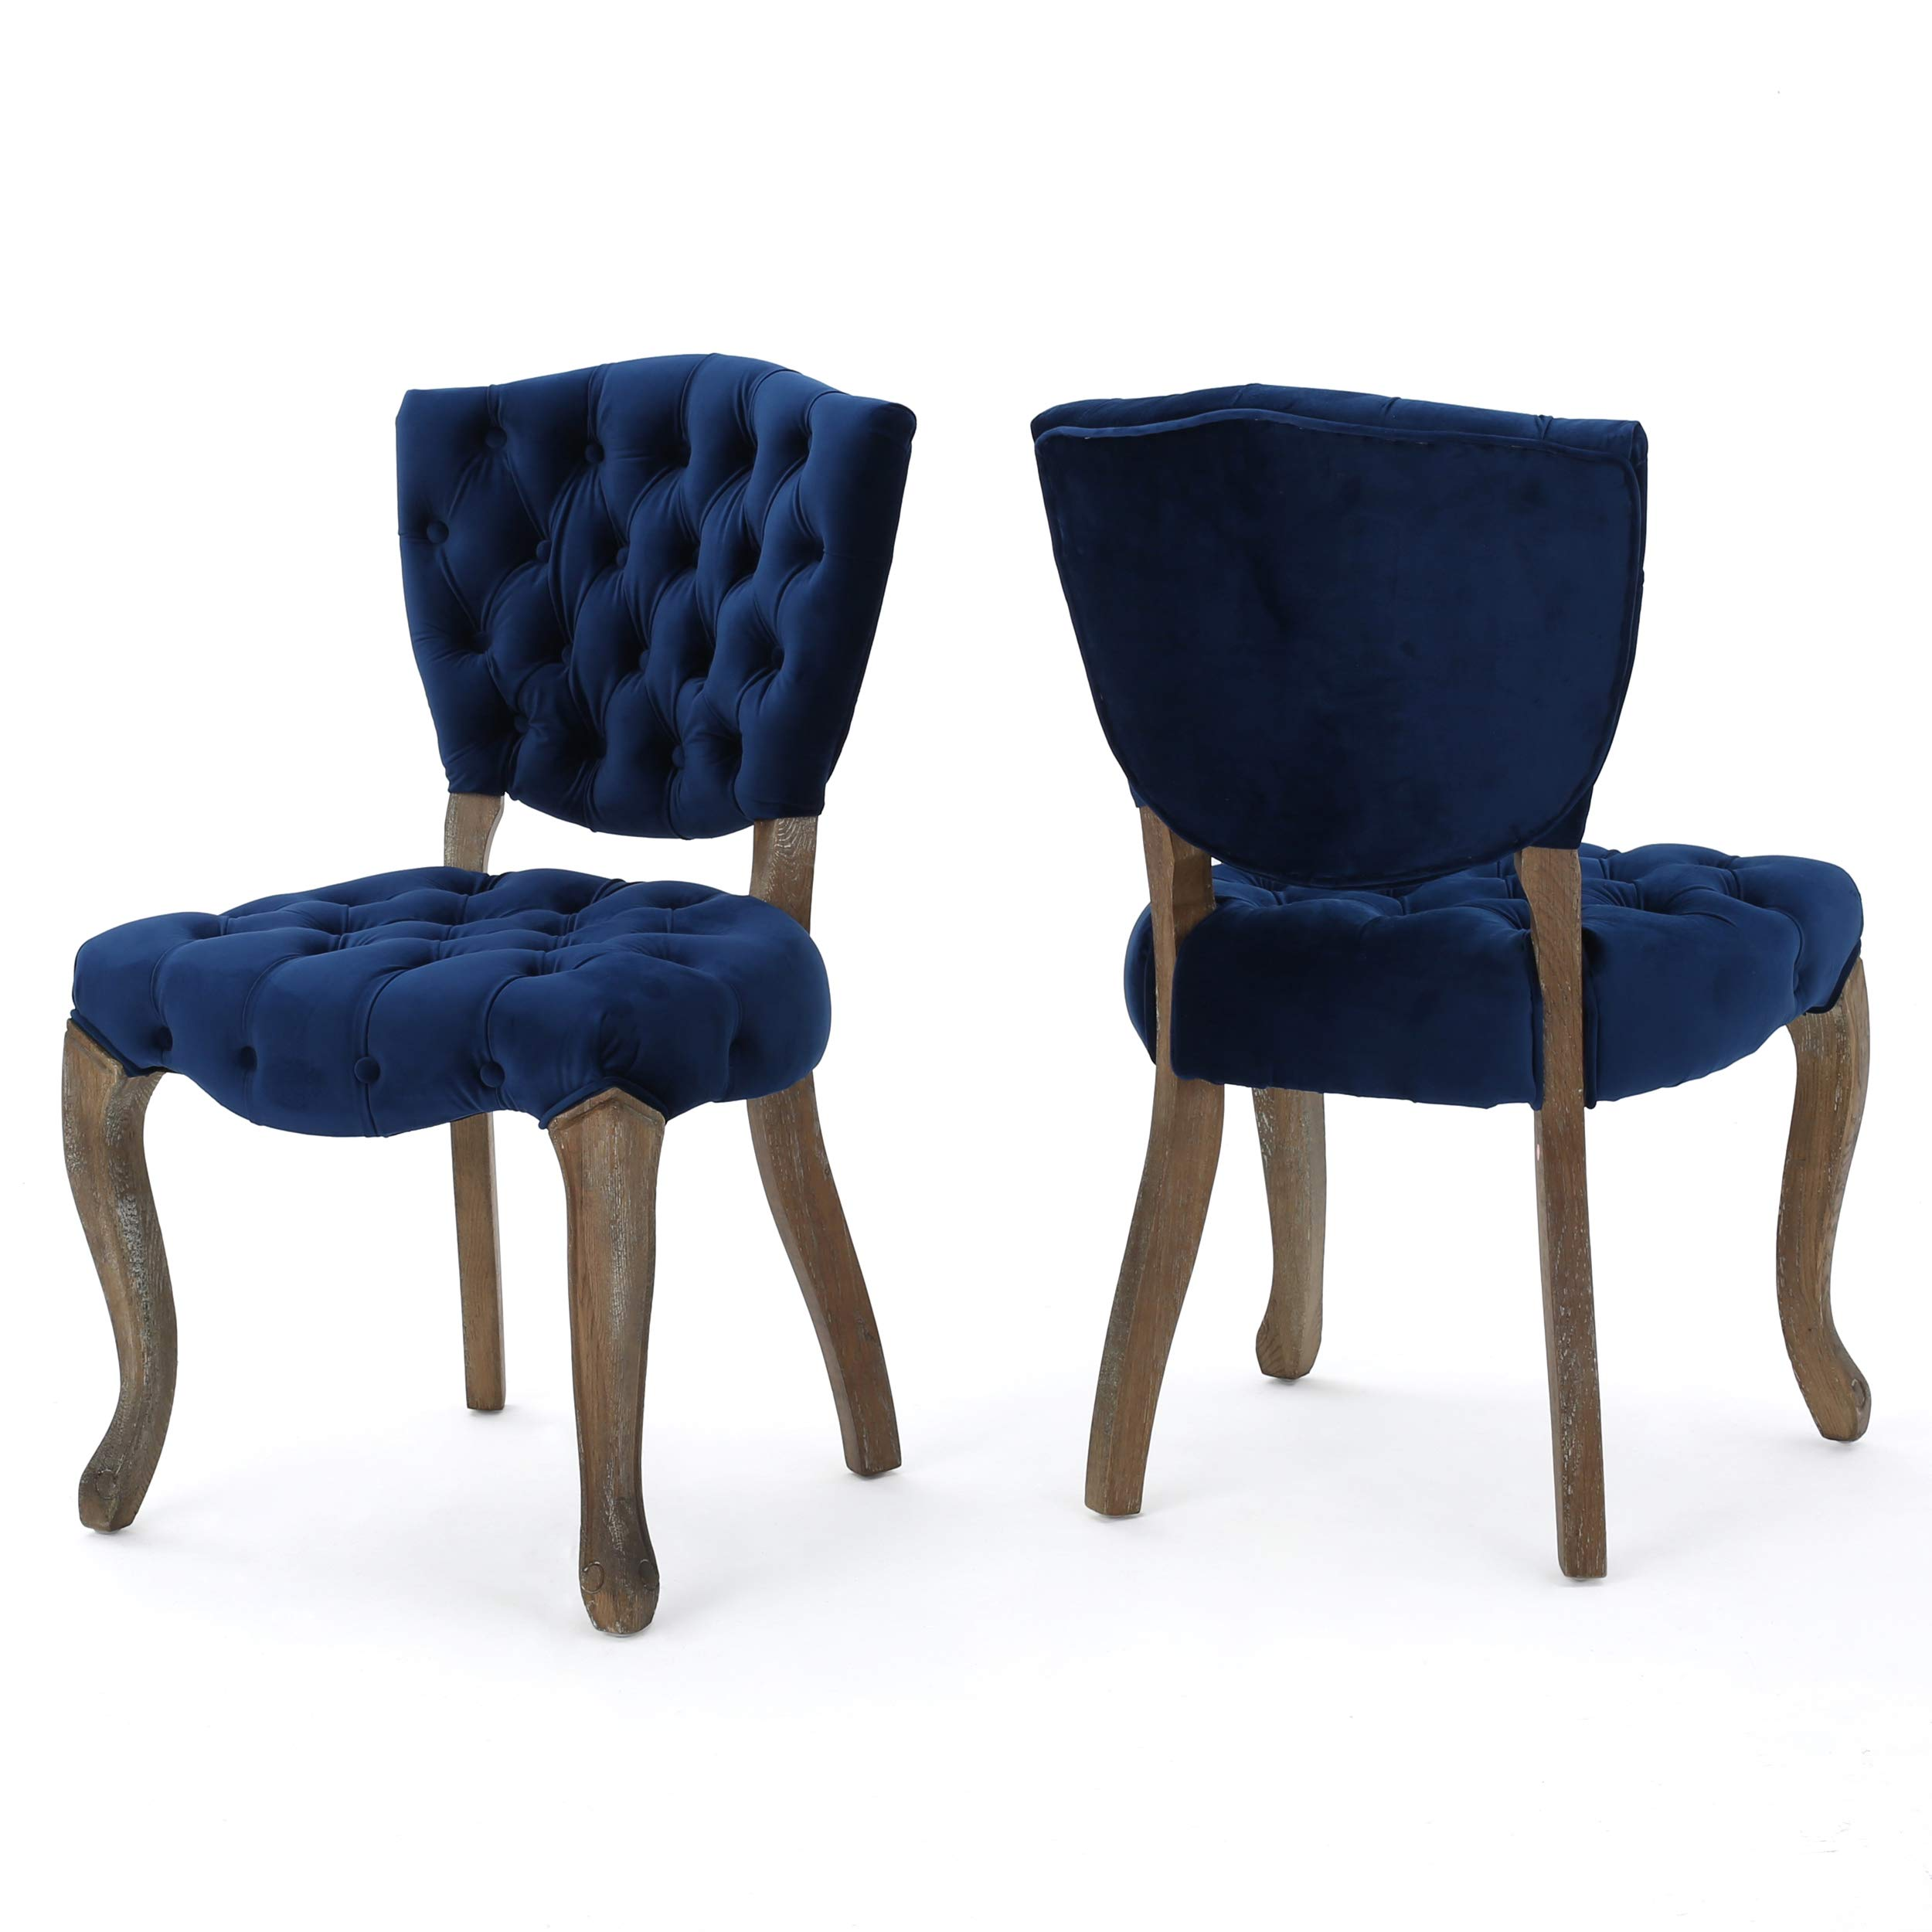 Christopher Knight Home 299874 Bates Tufted New Velvet Dining Chairs (Set of 2) Navy Blue by Christopher Knight Home (Image #1)